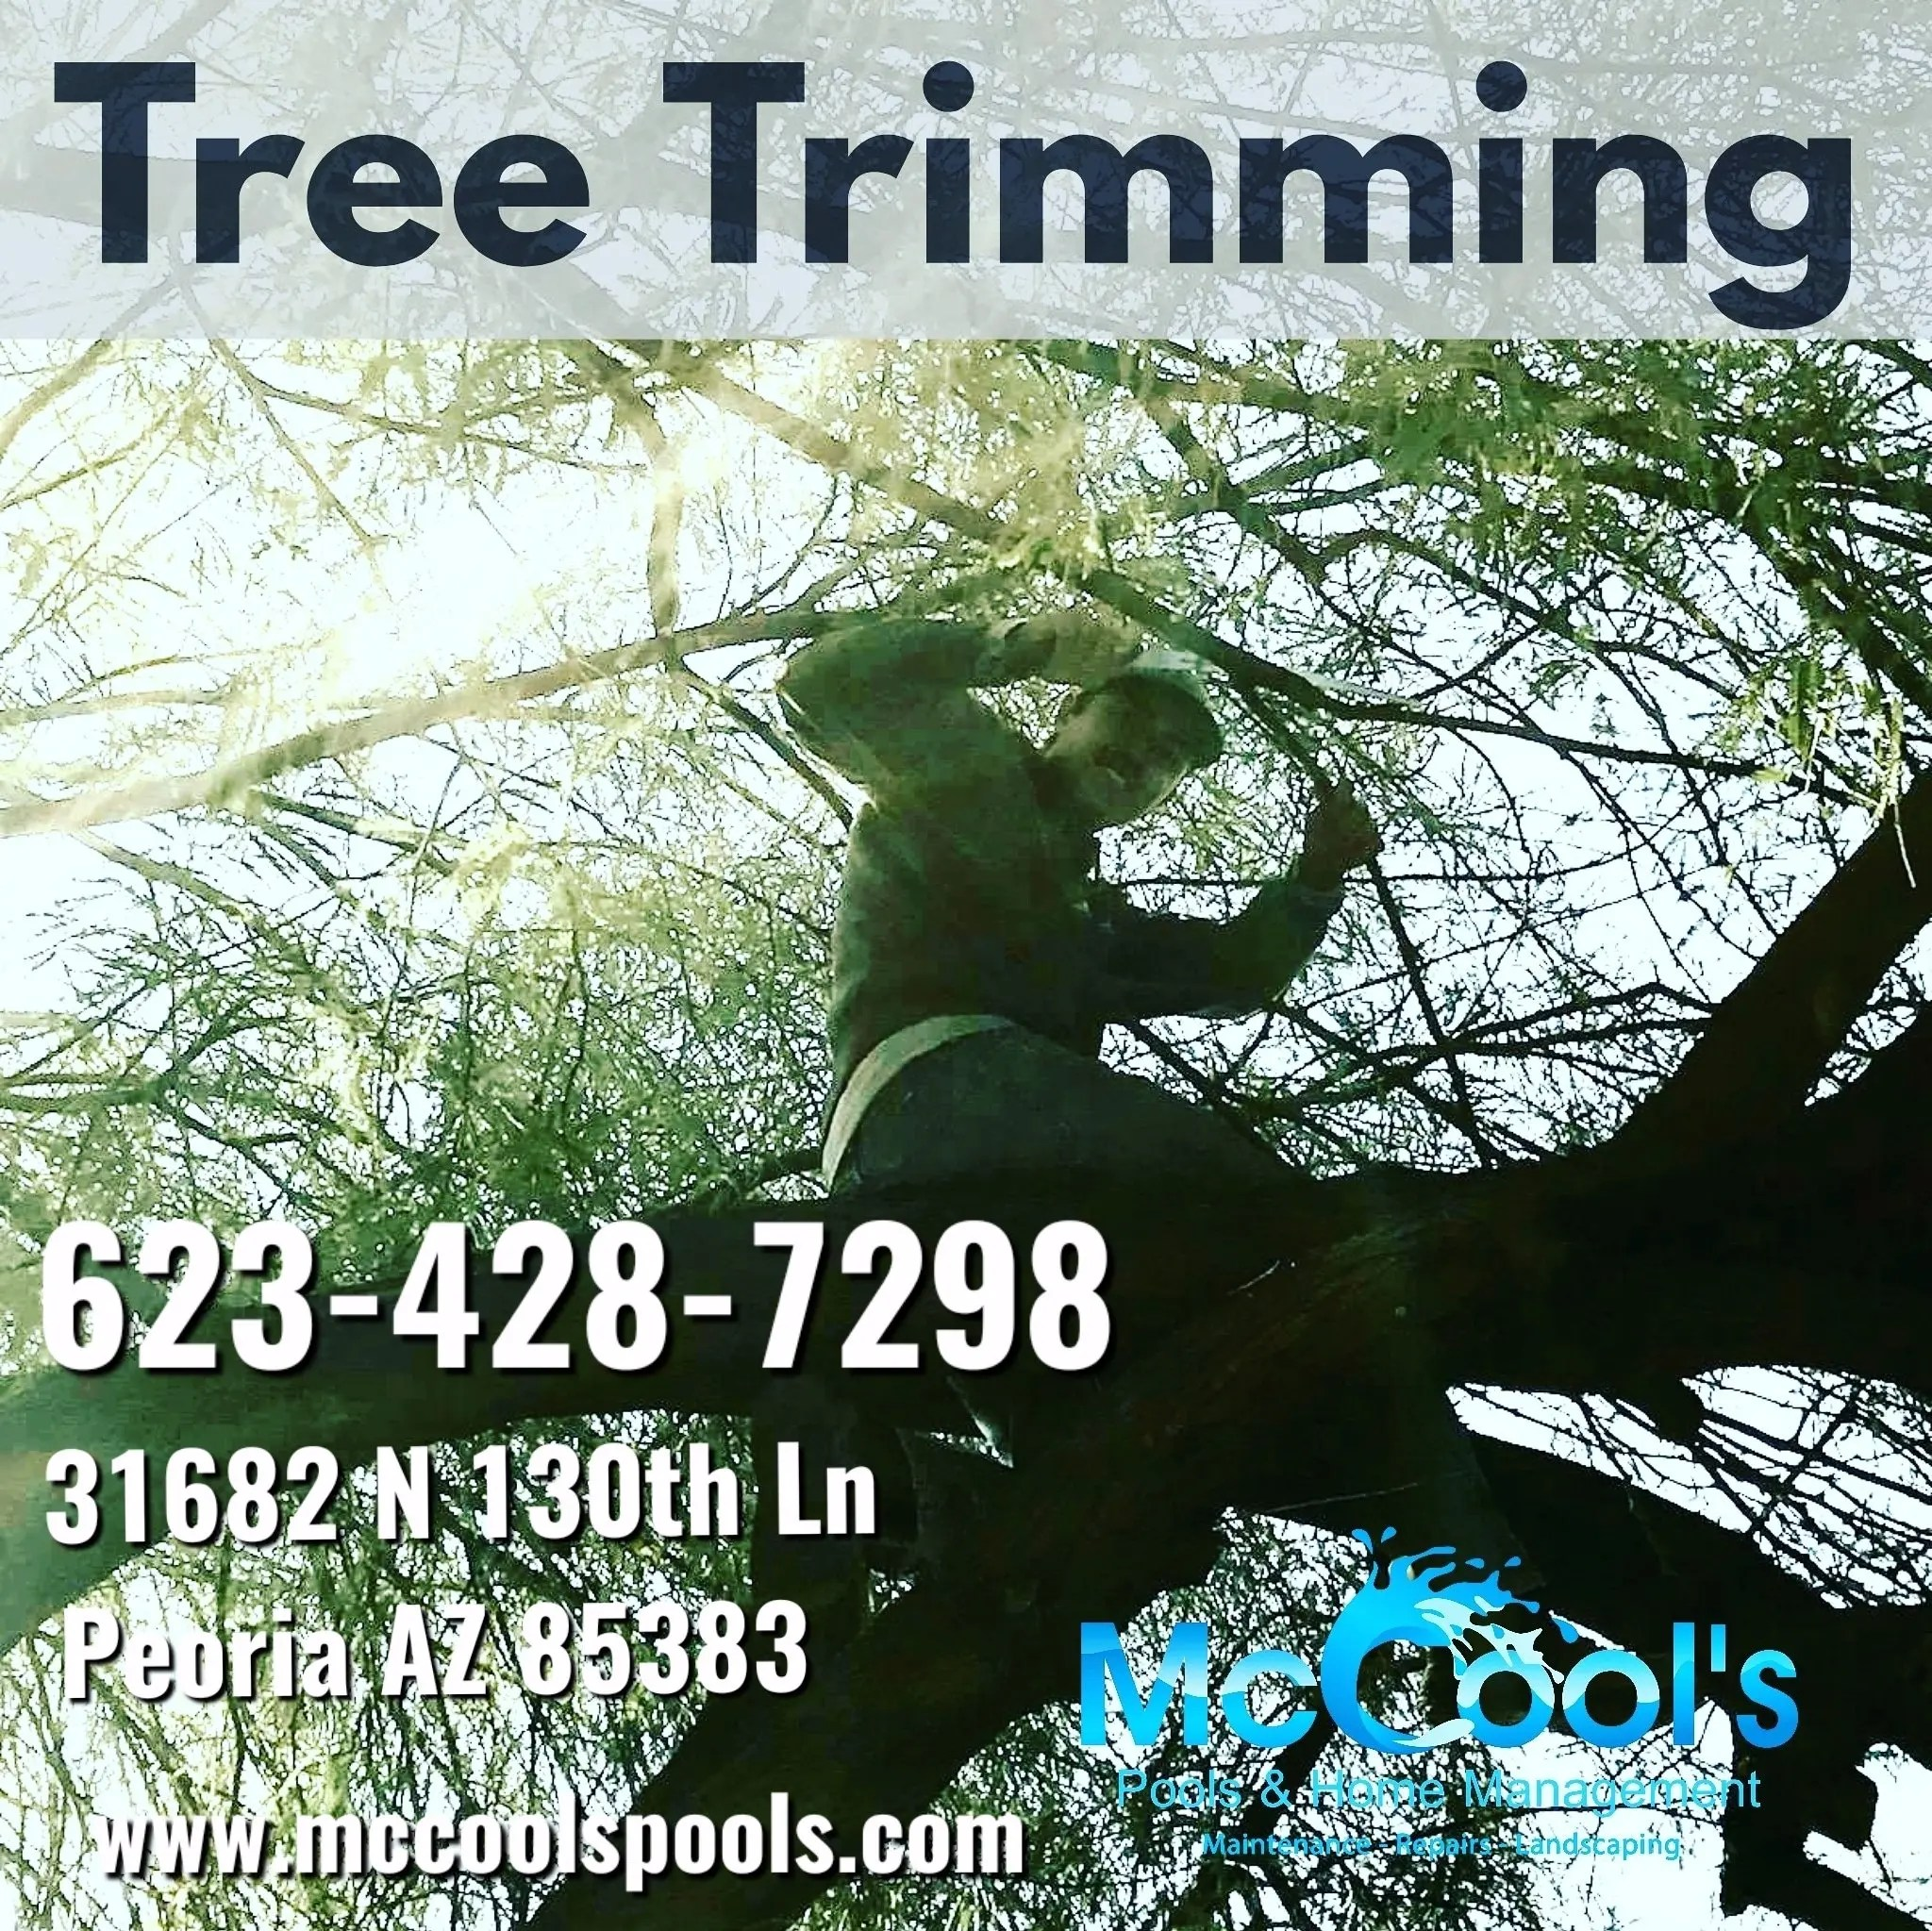 Tree Trimming and Landscaping in Scottsdale Arizona